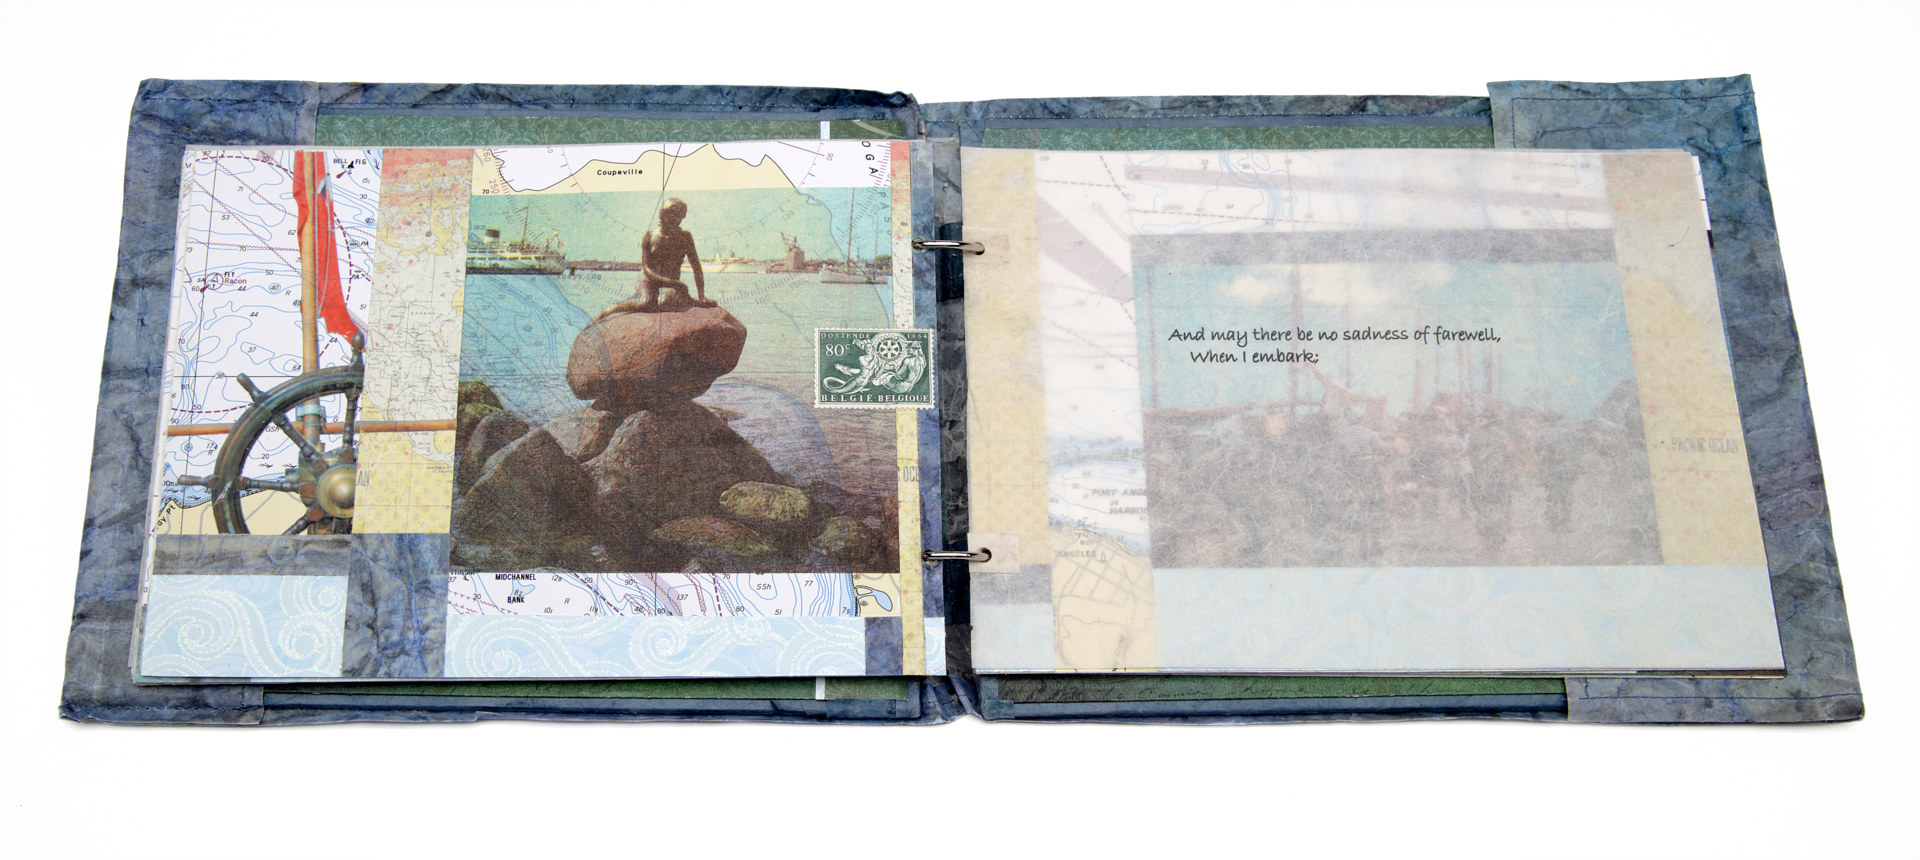 Nautical Log Book, Lithography, gel transfers, collage, assorted papers, glue, thread and 2 metal rings, Size (open 47 x 22 x 2 cm, 16 pages, November 2013.  by Julie Mcintyre